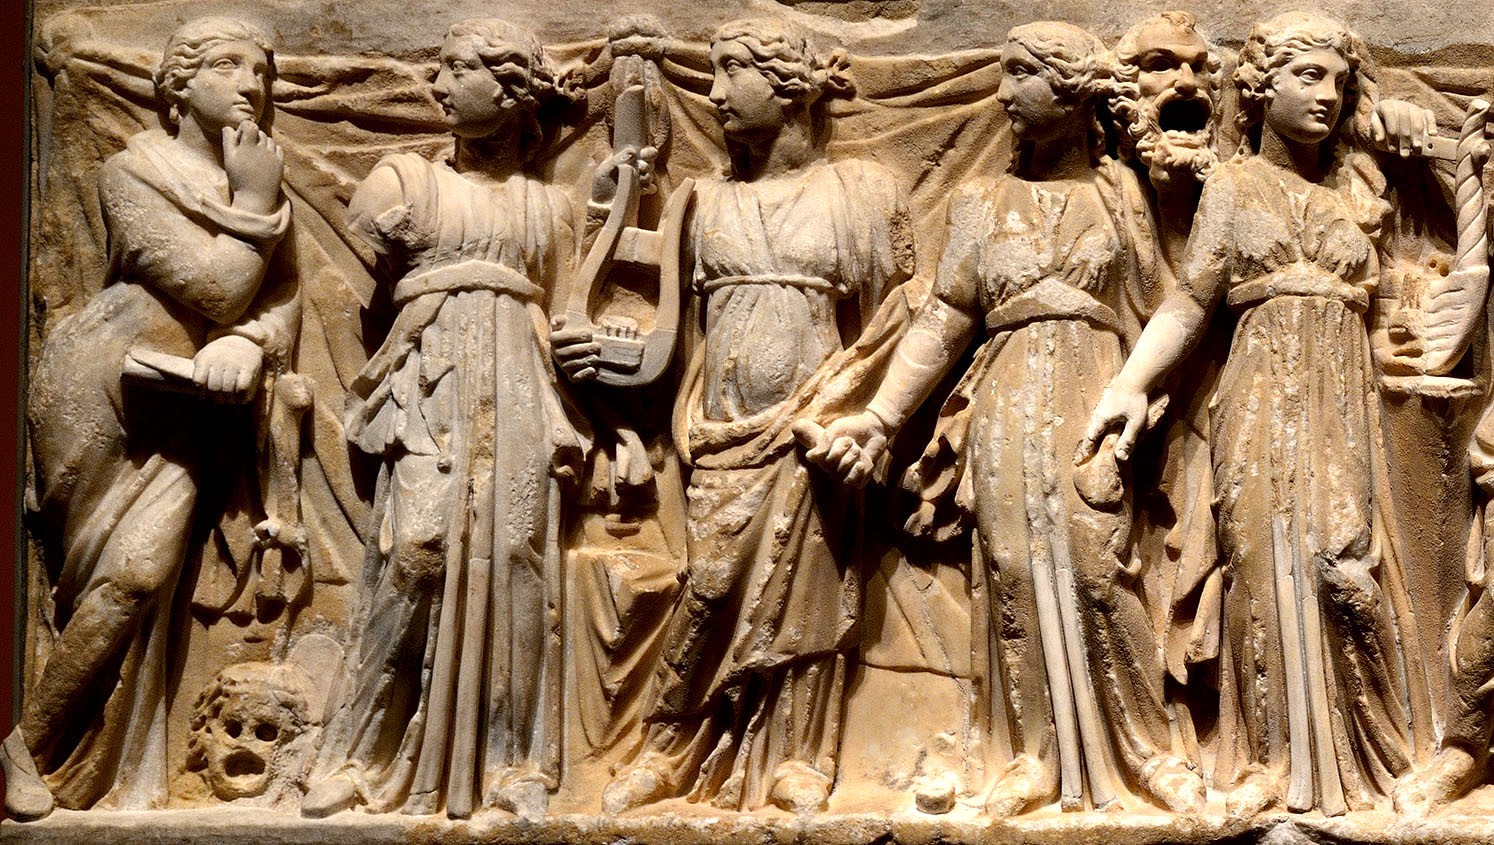 Nine Muses, Athena and Apollo. Detail: Polyhymnia, Euterpe, Thalia, Melpomene, Erato. Relief of the front wall of a sarcophagus. Marble. 2nd cent. CE. Inv. No. A 185. Saint Petersburg, The State Hermitage Museum